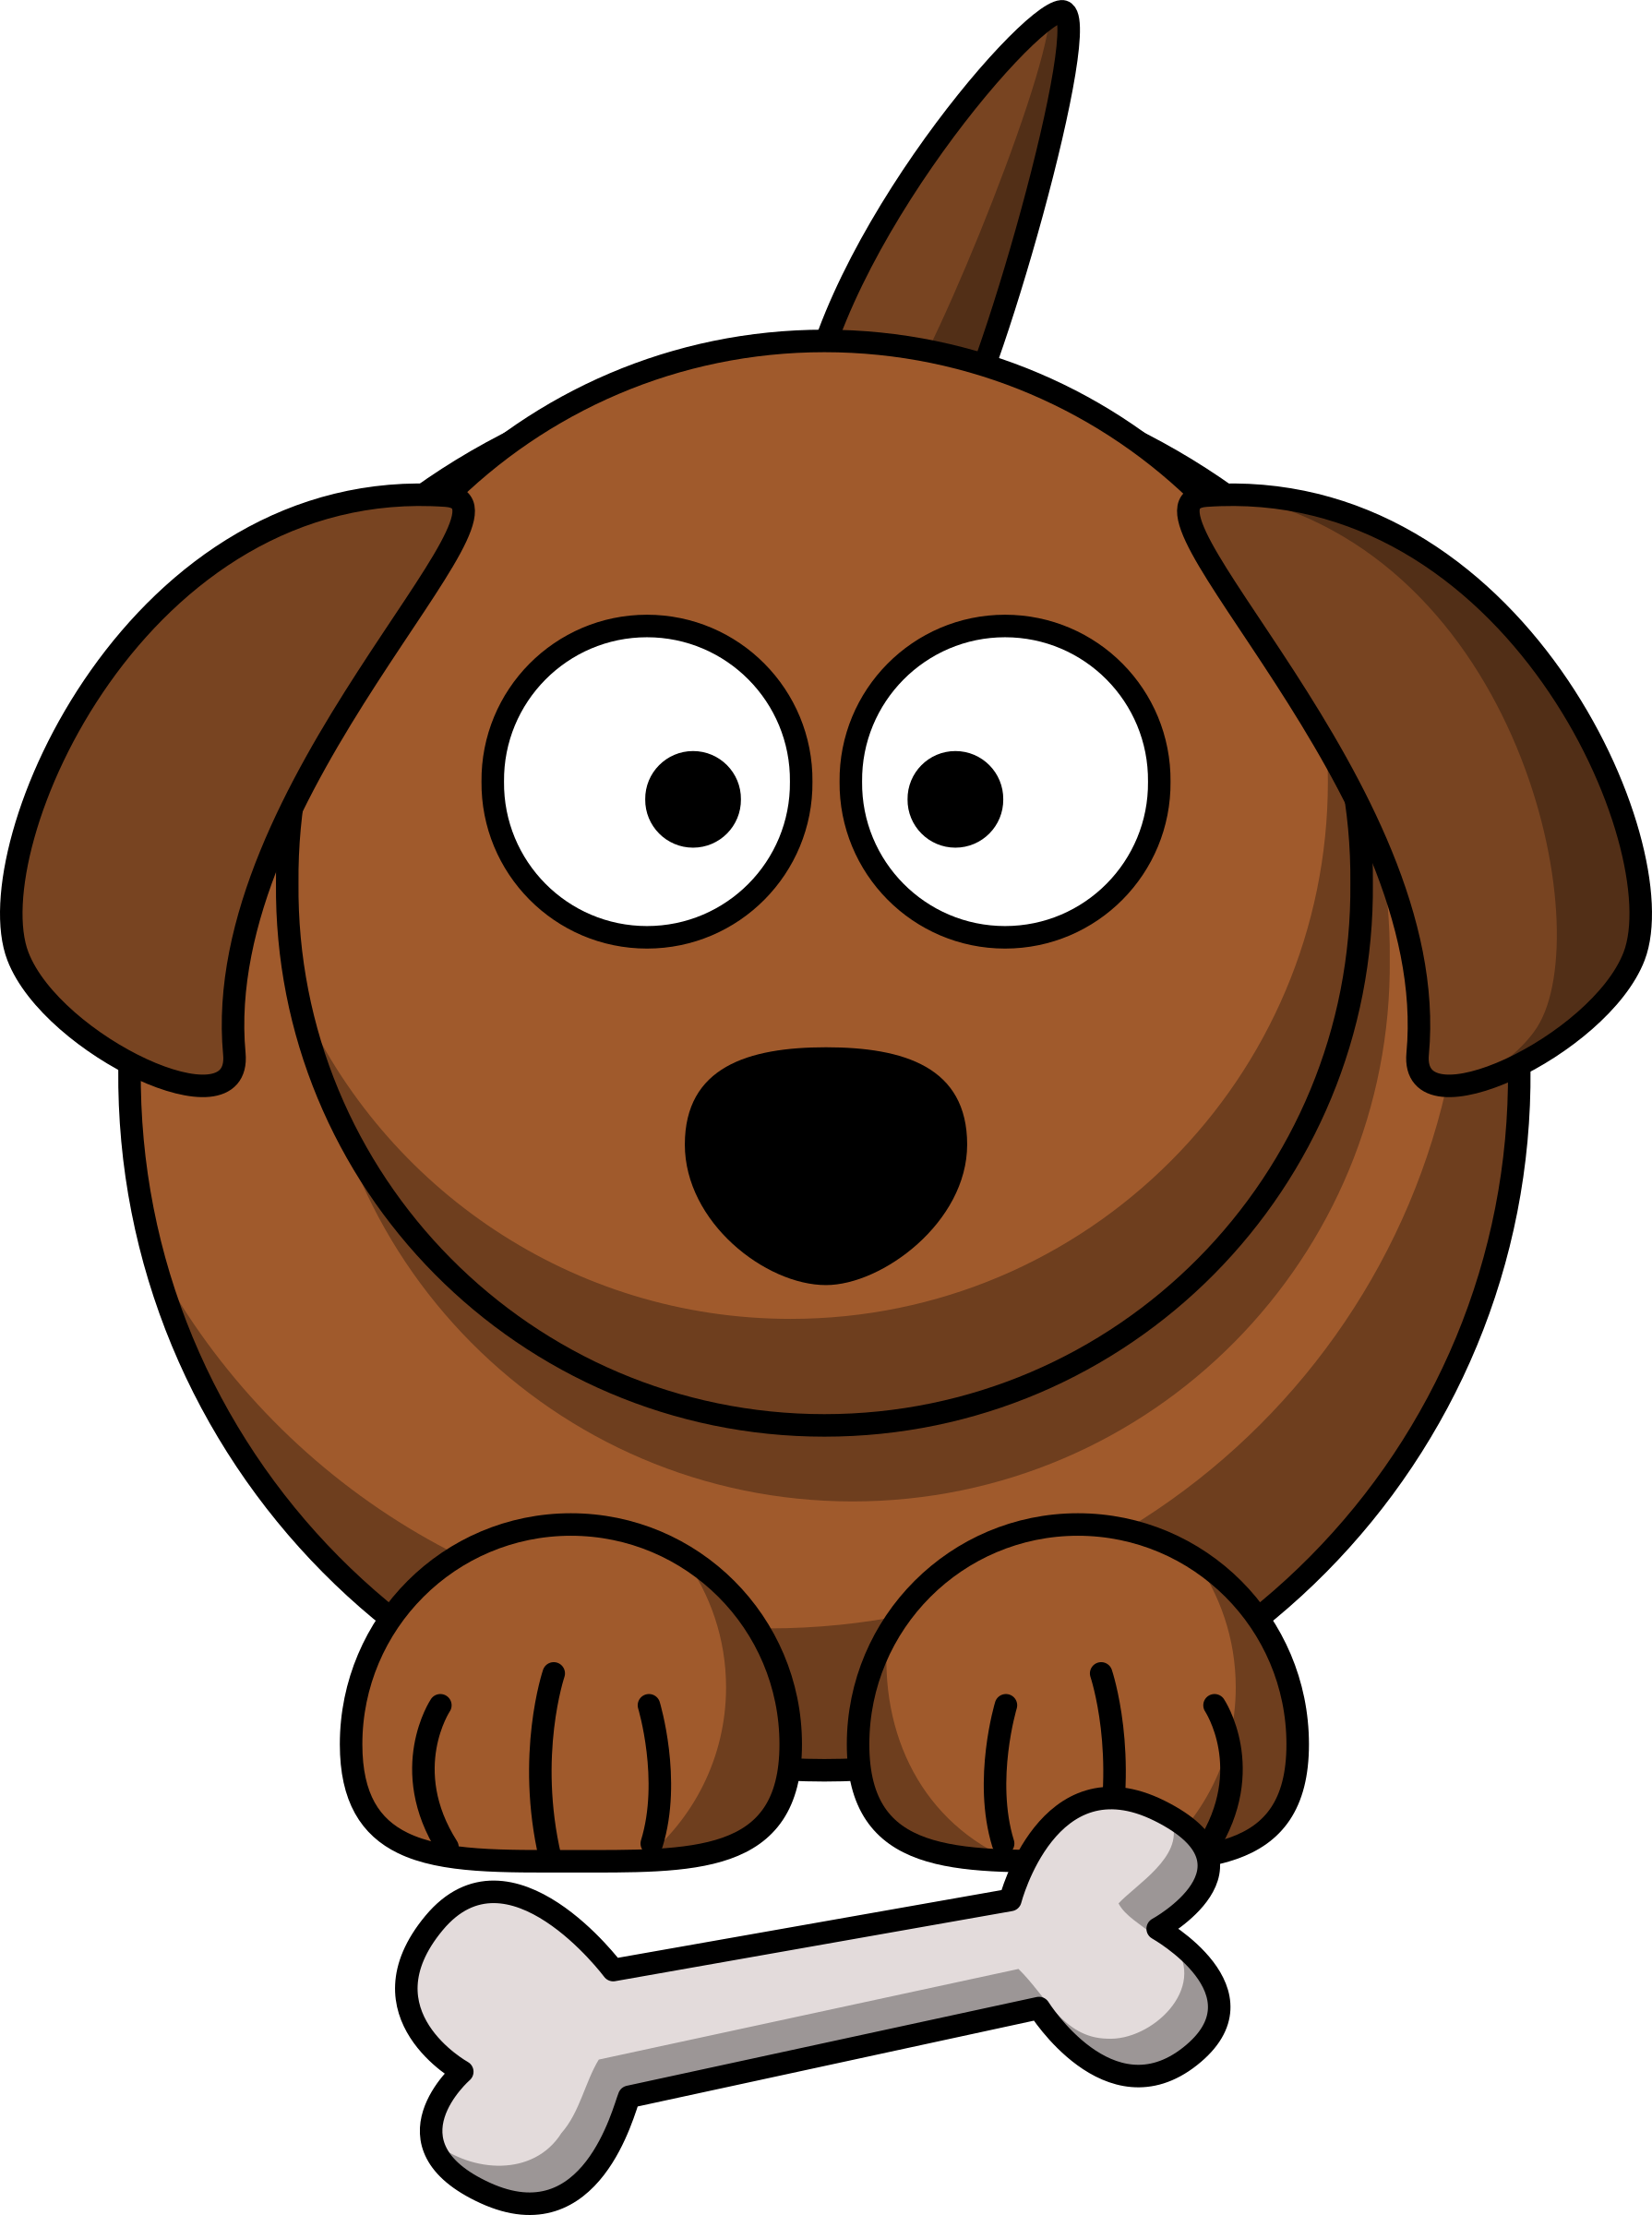 Png dog clipart clip art royalty free library Clipart - Cartoon dog clip art royalty free library